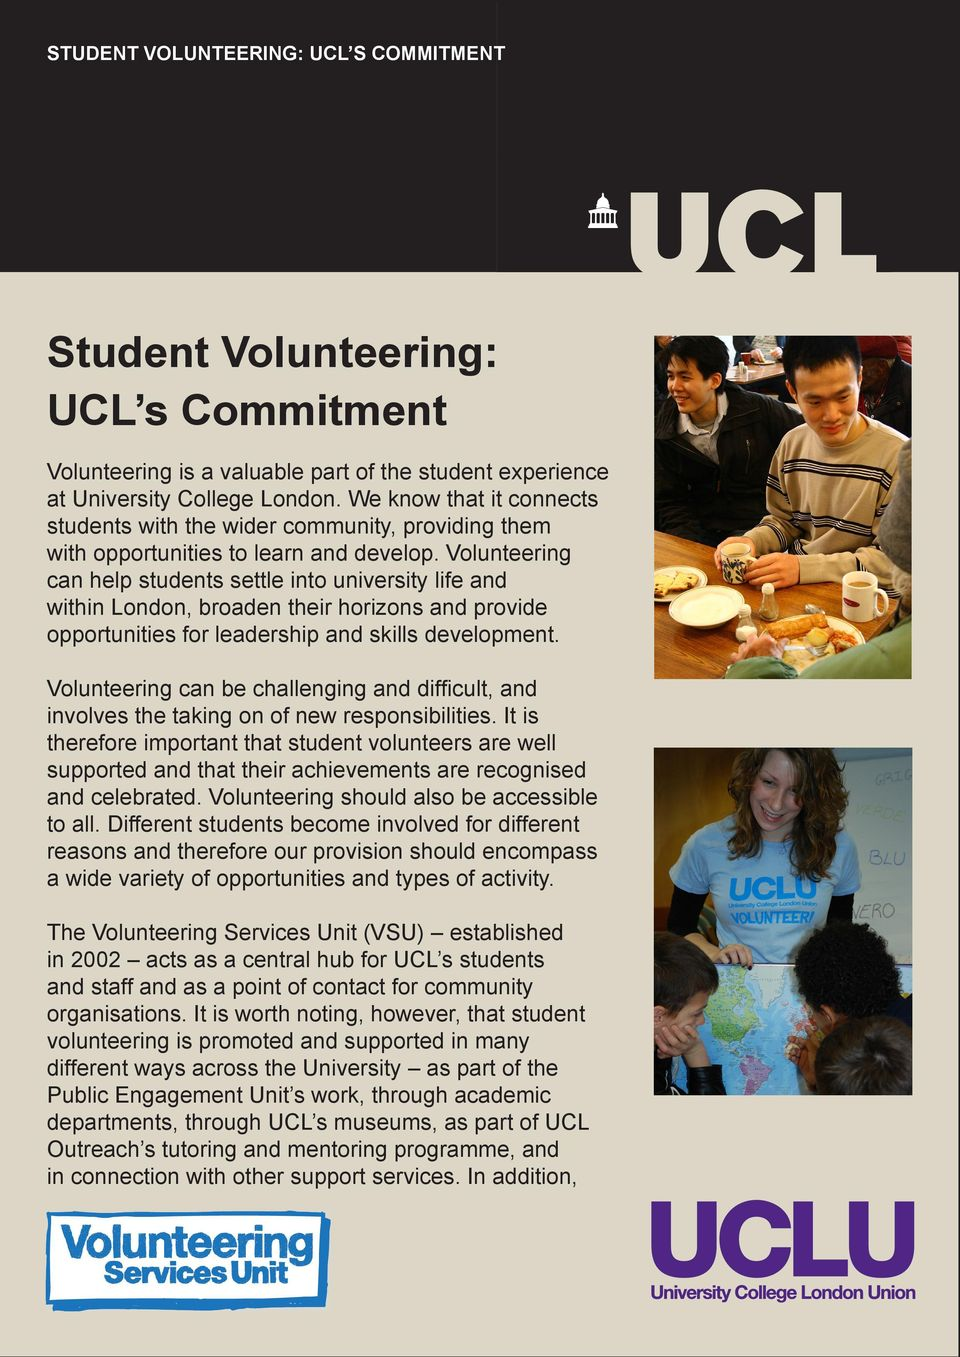 Volunteering can help students settle into university life and within London, broaden their horizons and provide opportunities for leadership and skills development.